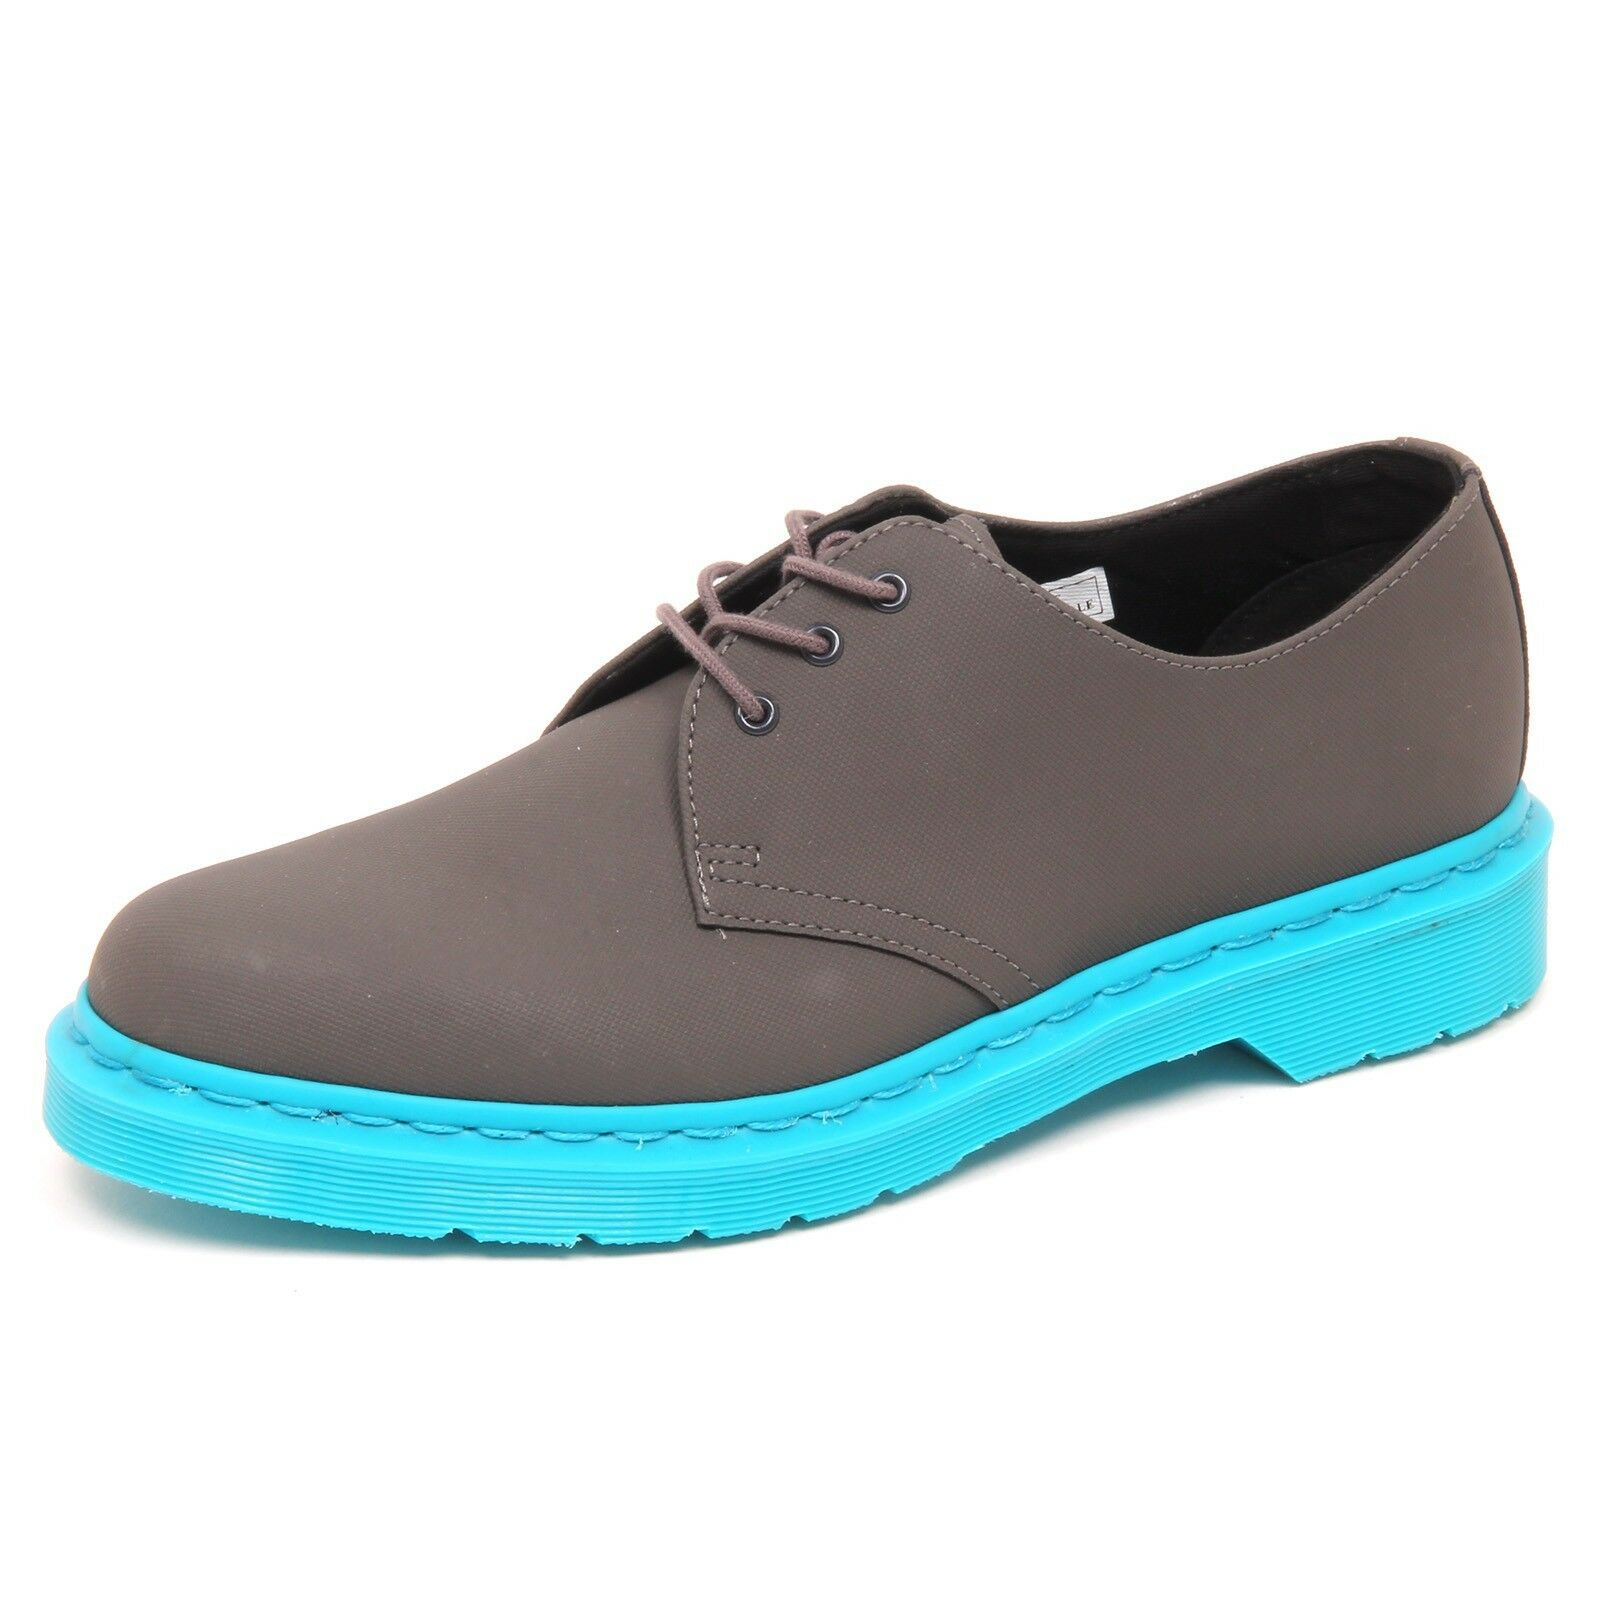 D8160 (SAMPLE NOT FOR SALE WITHOUT BOX) scarpa uomo DR. MARTENS shoe man